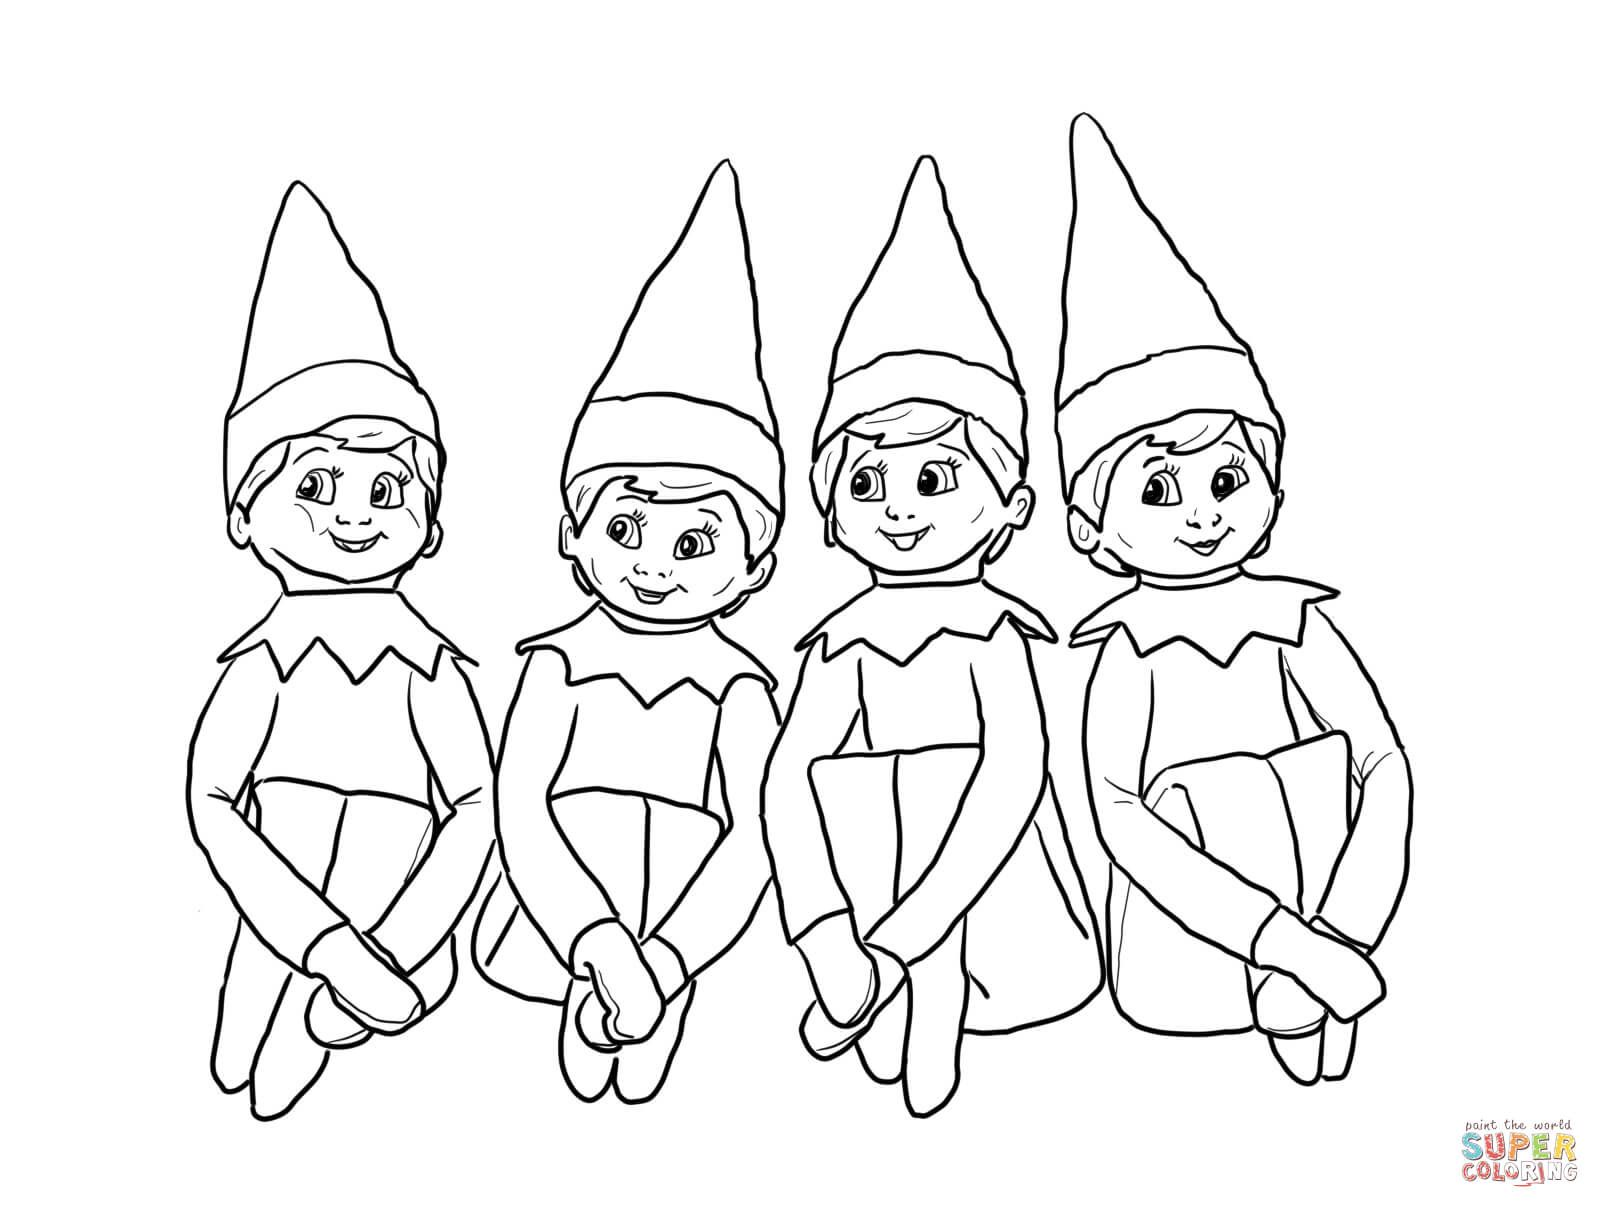 Elf On The Shelf Coloring Pages Free Coloring Pages Coloring Pages In 2020 Super Coloring Pages Christmas Coloring Pages Free Christmas Coloring Pages